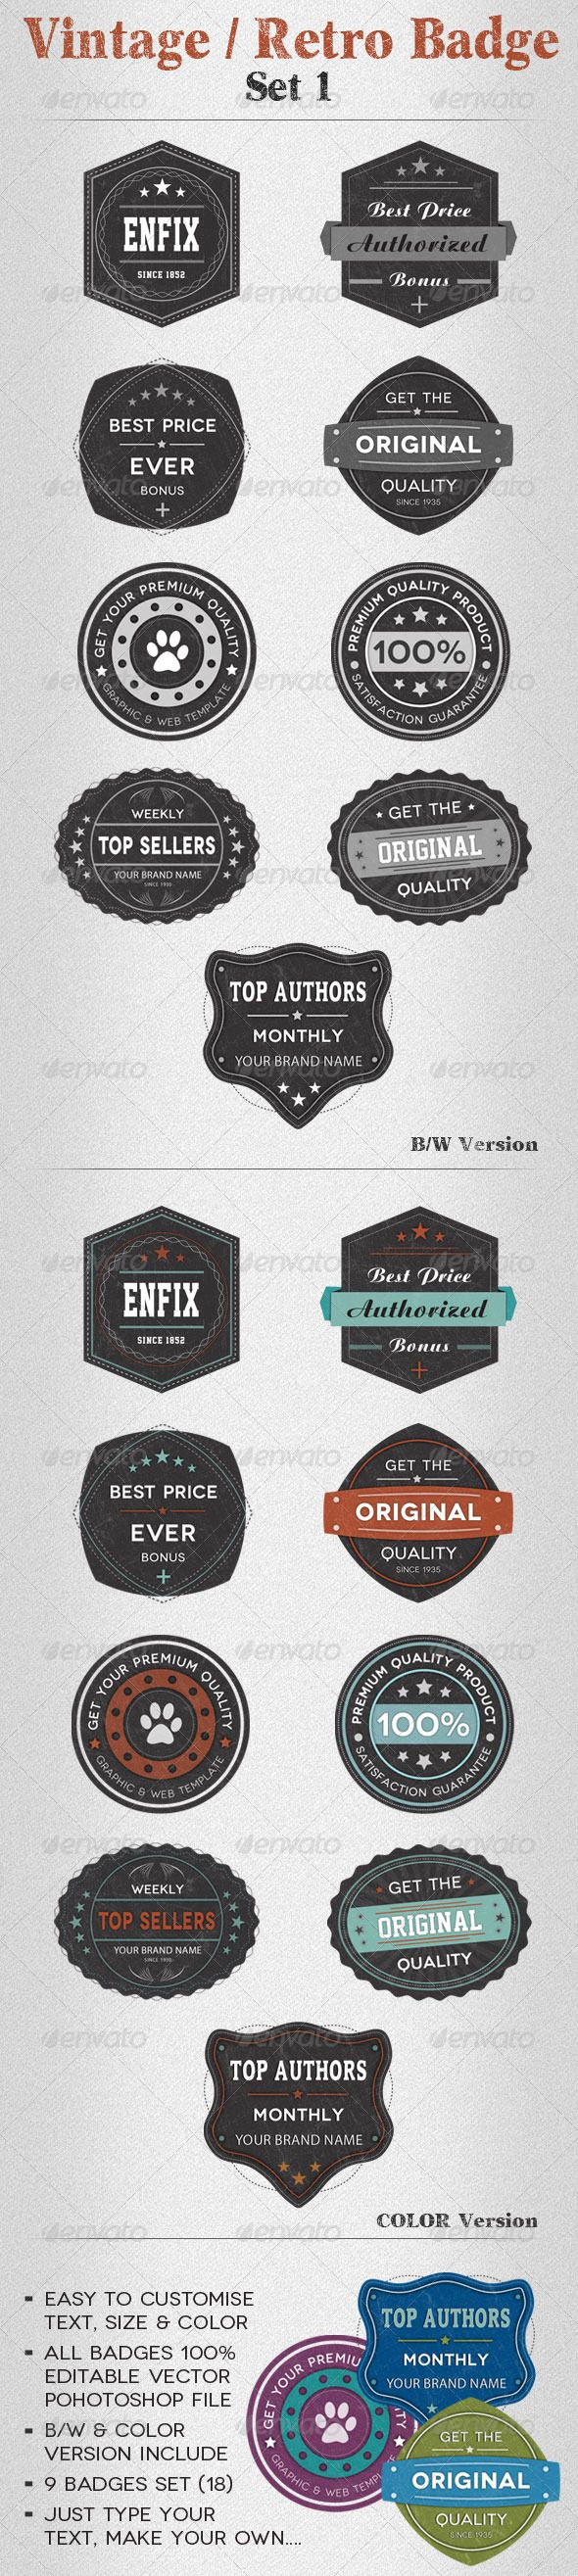 Vintage  Retro Badge Set   Badges Template And Logos